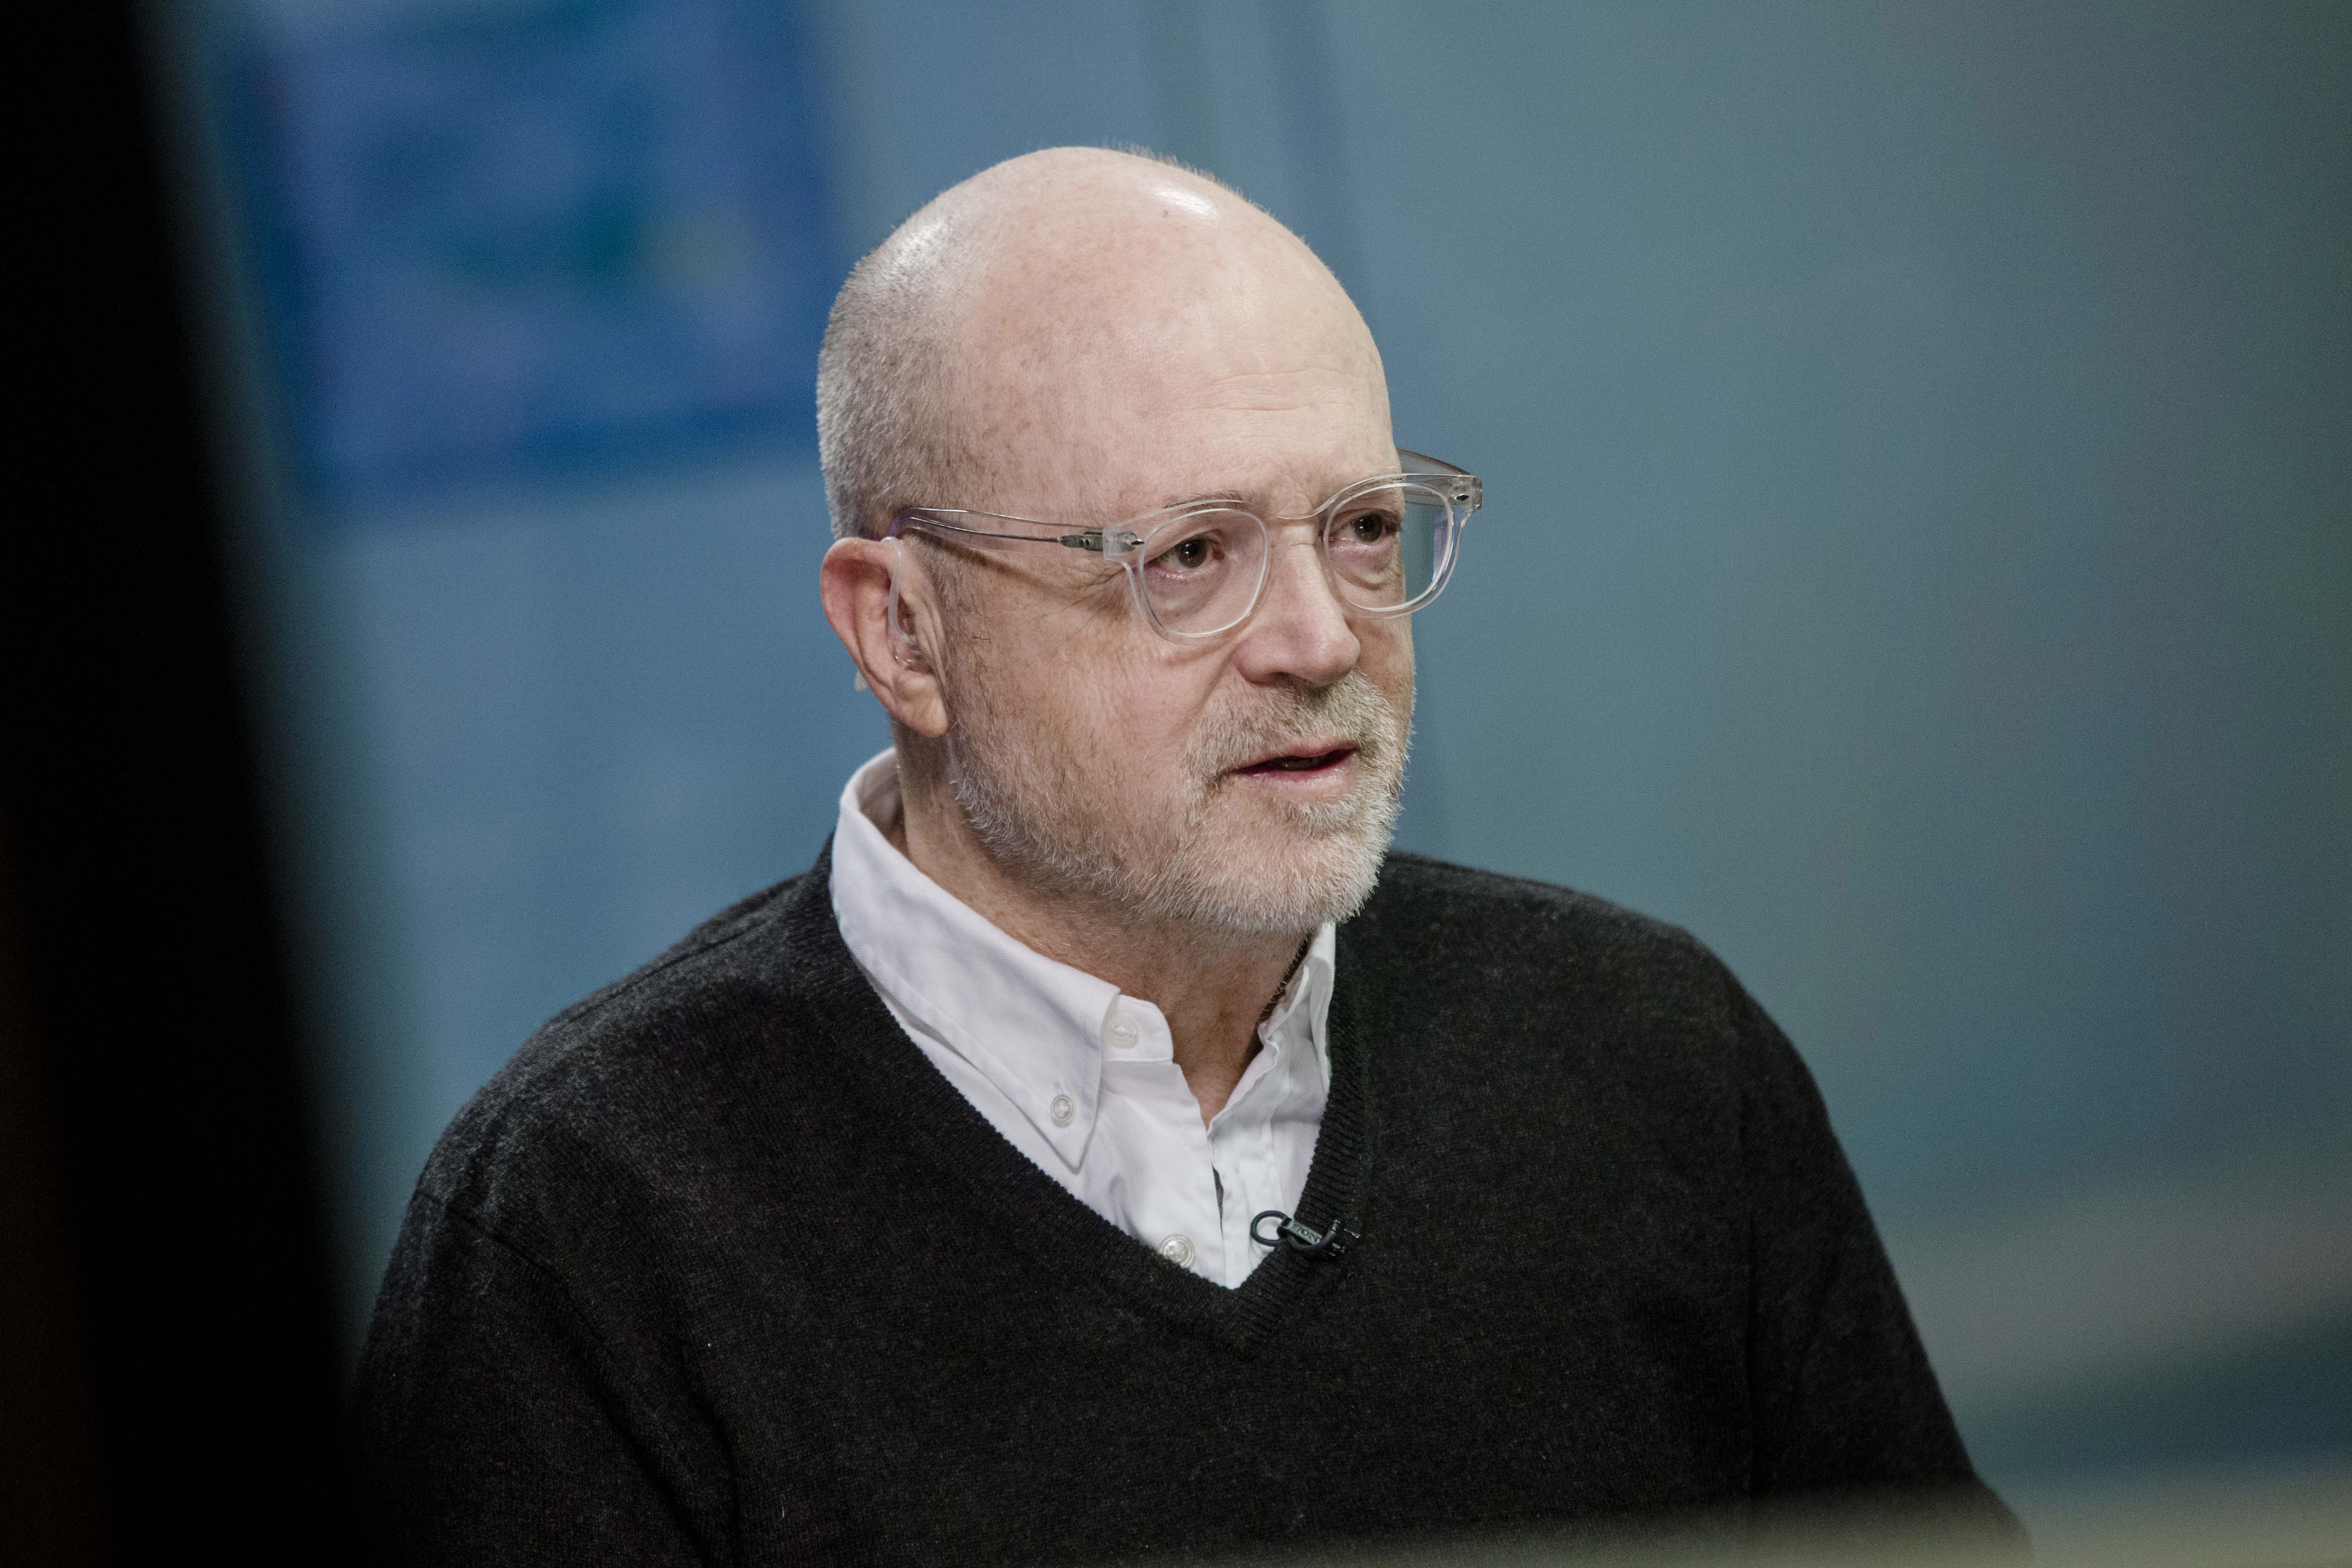 J.Crew Group Inc. Chief Executive Officer Mickey Drexler Interview